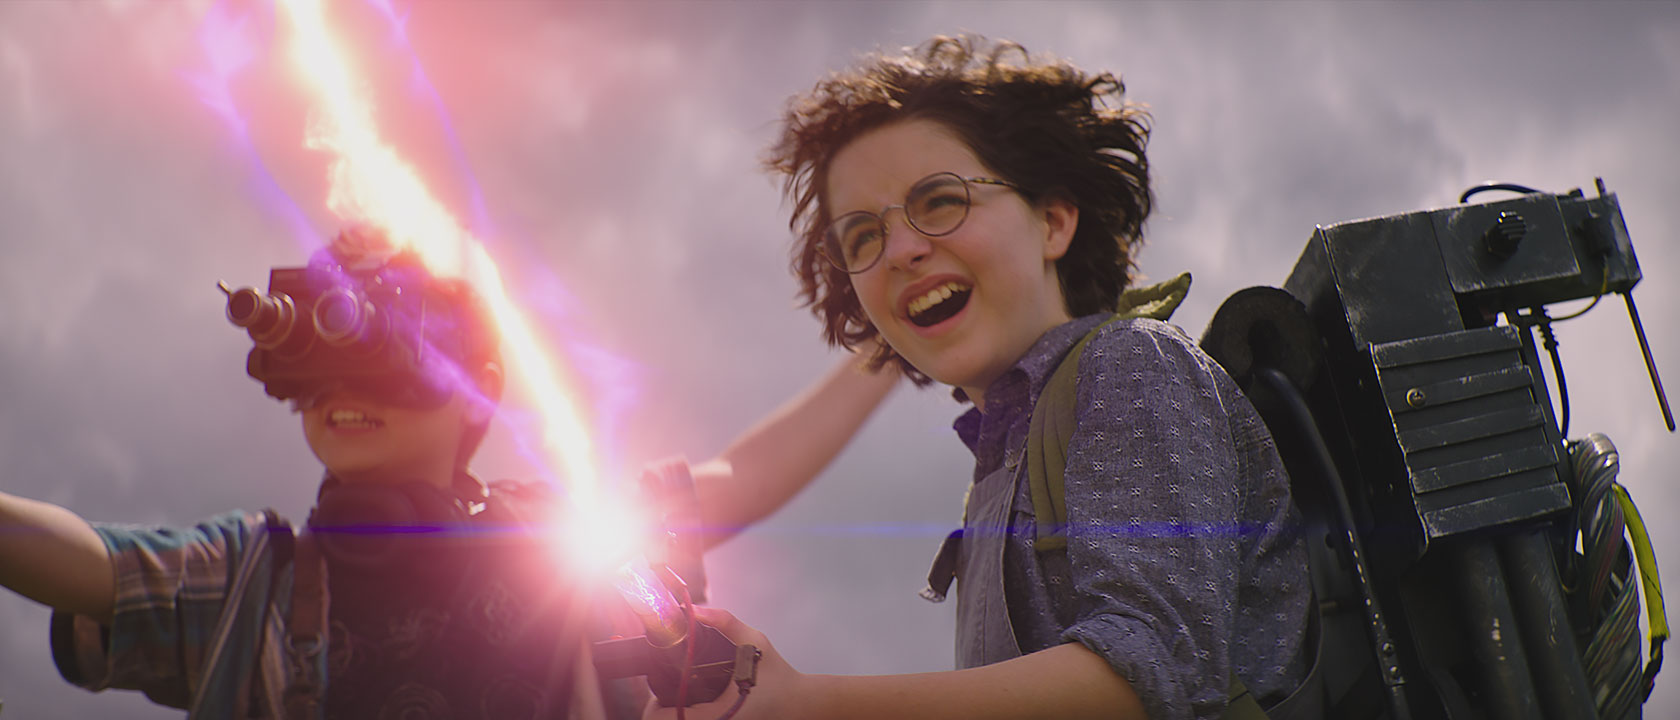 Ghostbusters: Afterlife Review: The Anticipated Sequel Captures The Spirit Of The Original But Really Belongs To McKenna Grace